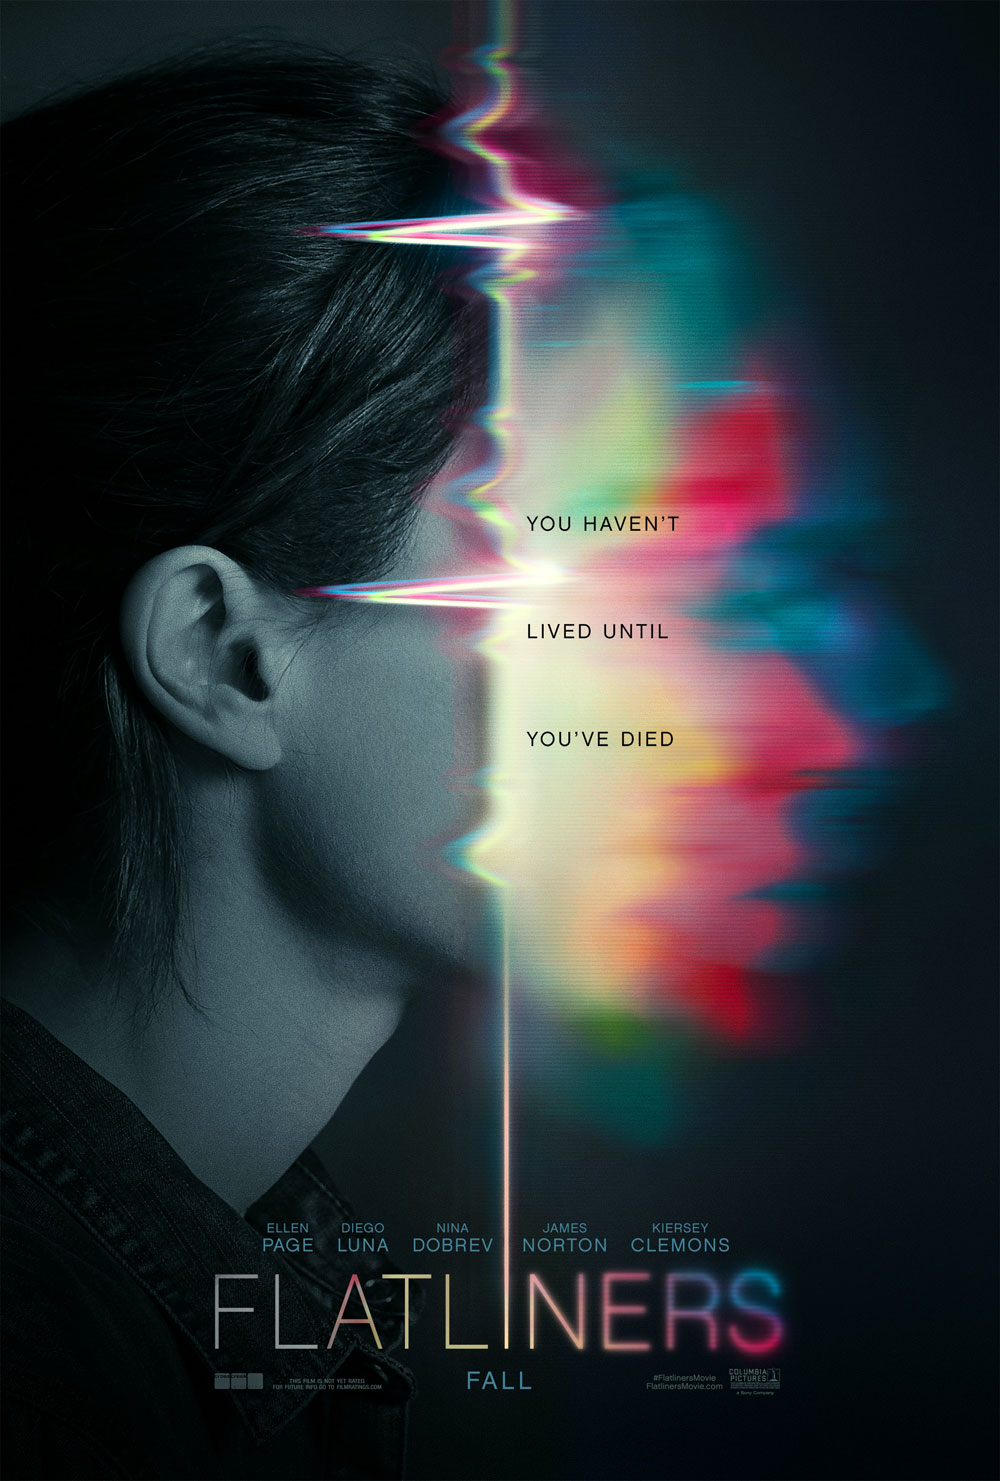 flatliners poster - New International Trailer for Flatliners Brings Something Back From the Dead